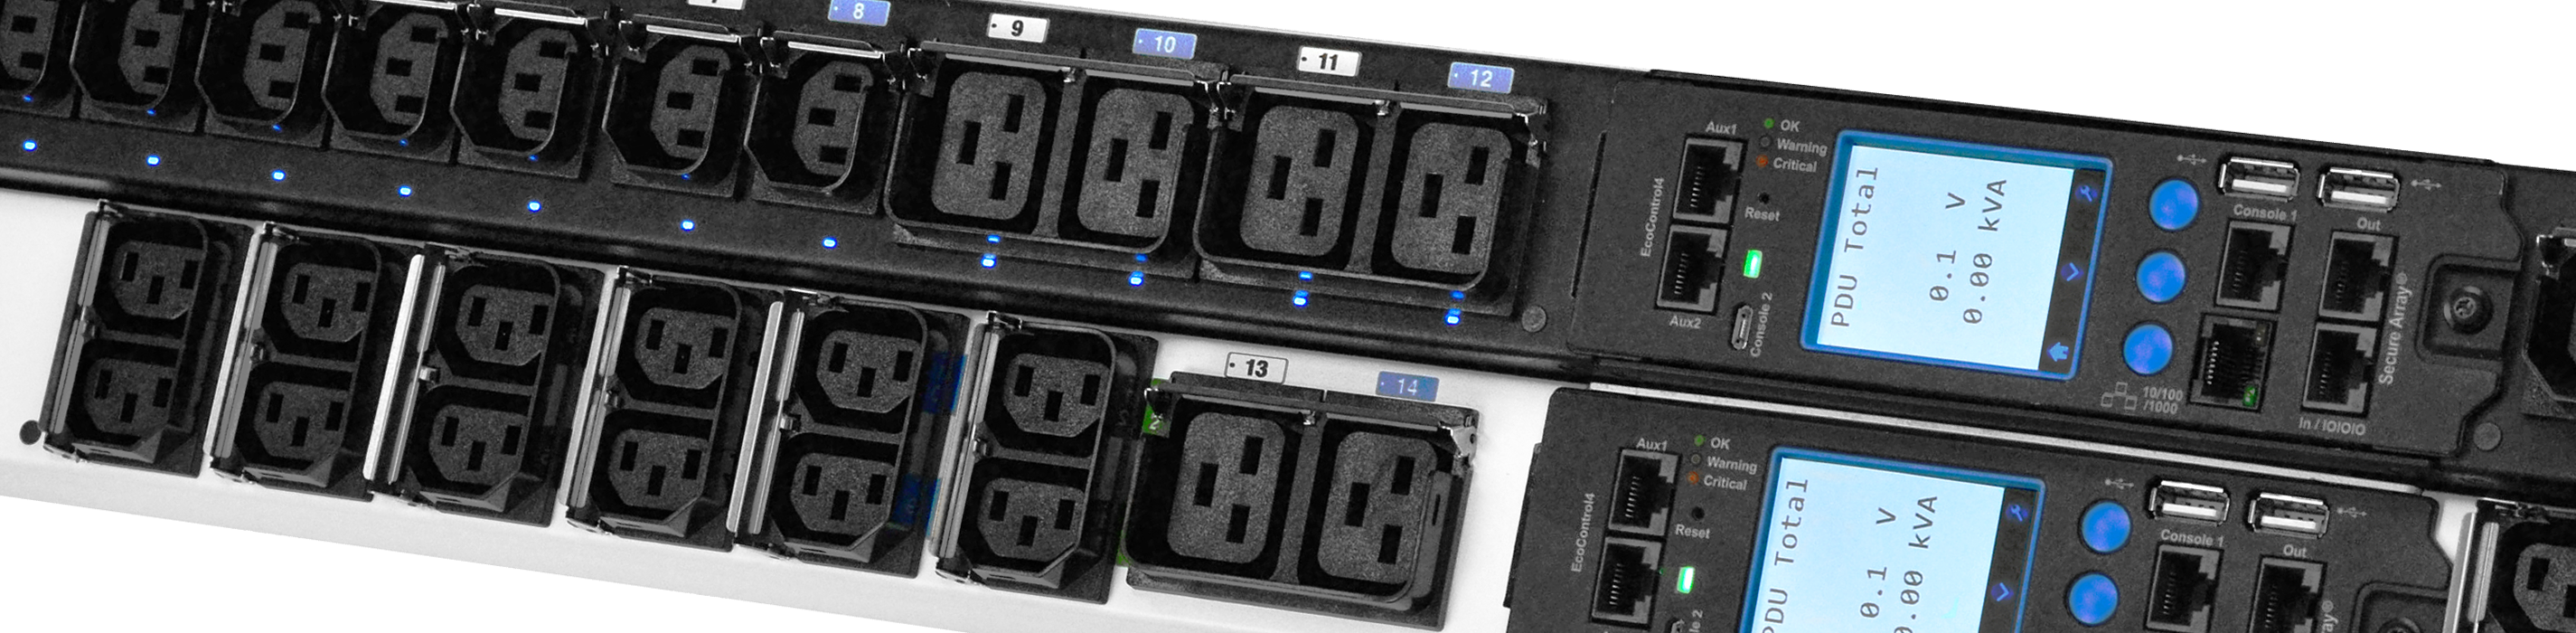 Chatsworth econnect PDU